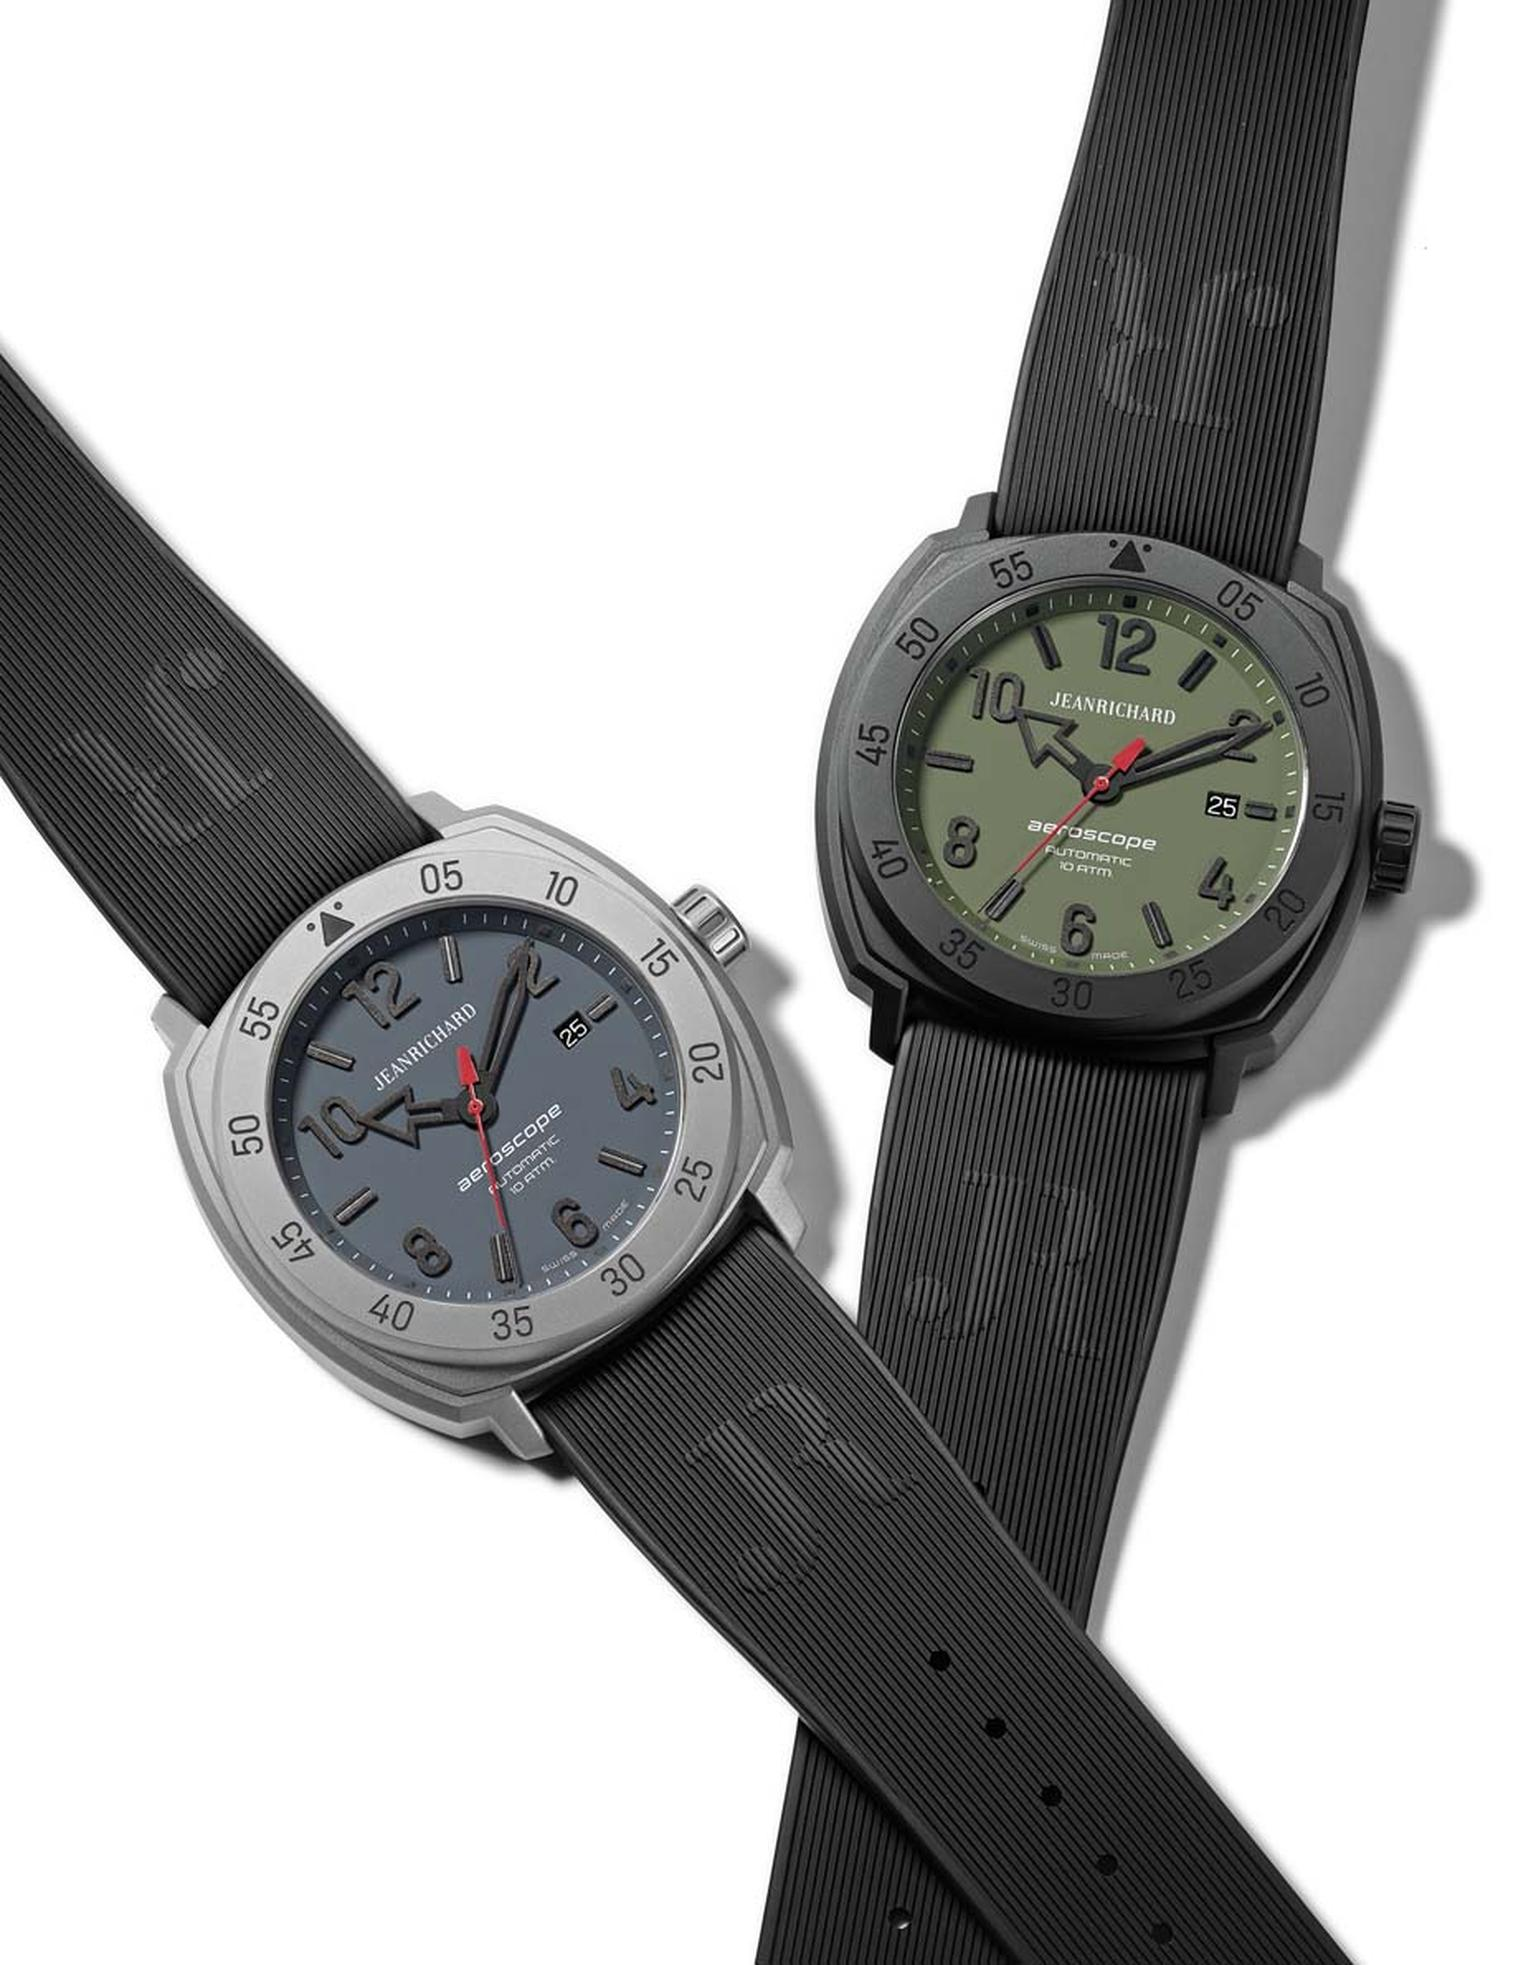 JeanRichard Aeroscope watch features a tri-compax chronograph and multi-component case construction. Besides dial colors, the Aeroscope can be placed in different cases as well as bezels such as natural and DLC-coated stainless steel.